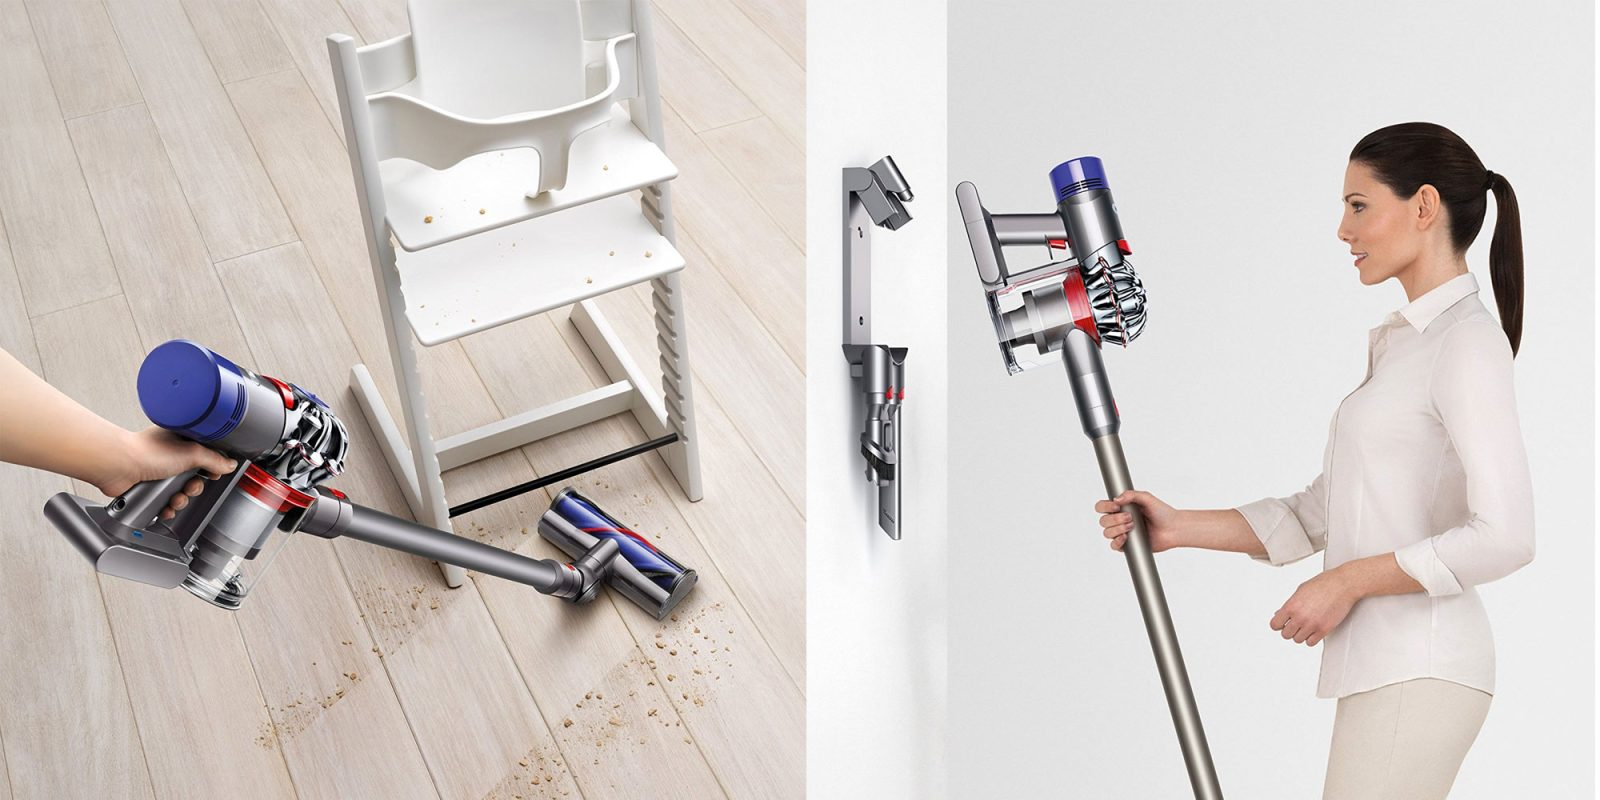 Save on refurbished Dyson vacuums in Woot's one-day-only sale from $135